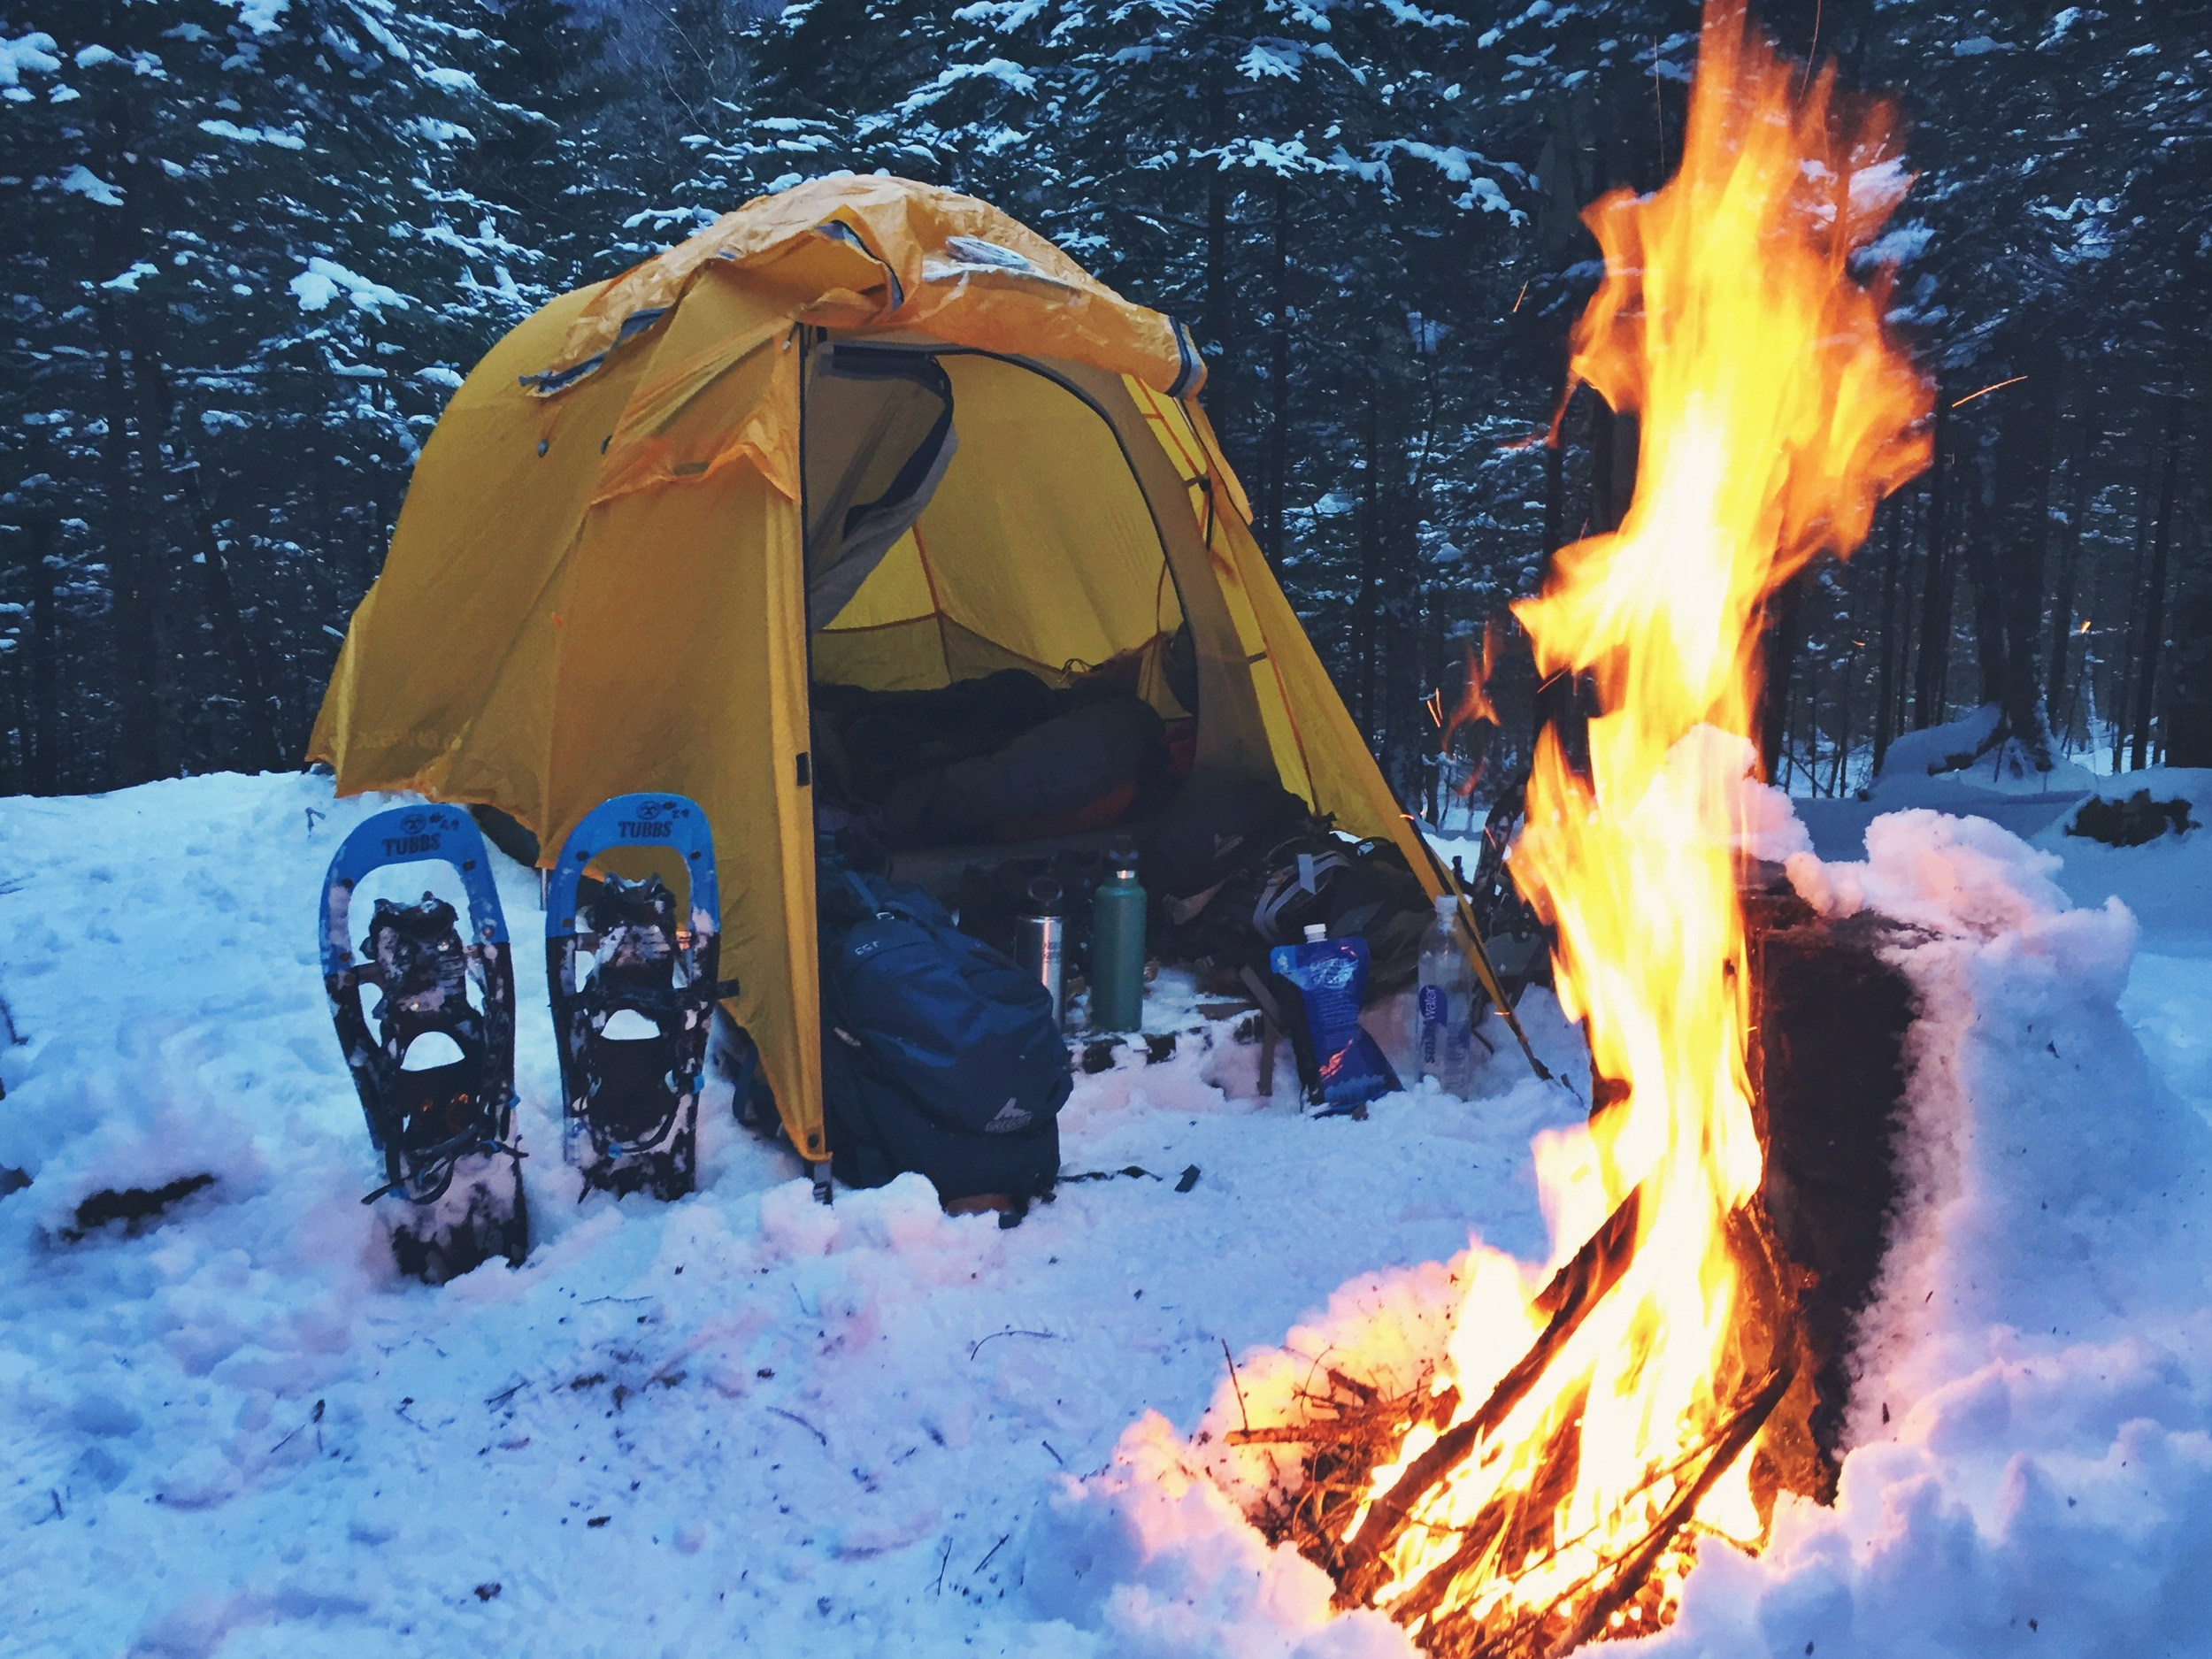 While Moose warms up her sleeping bag, Teton generates a little warmth with a small kindling fire.